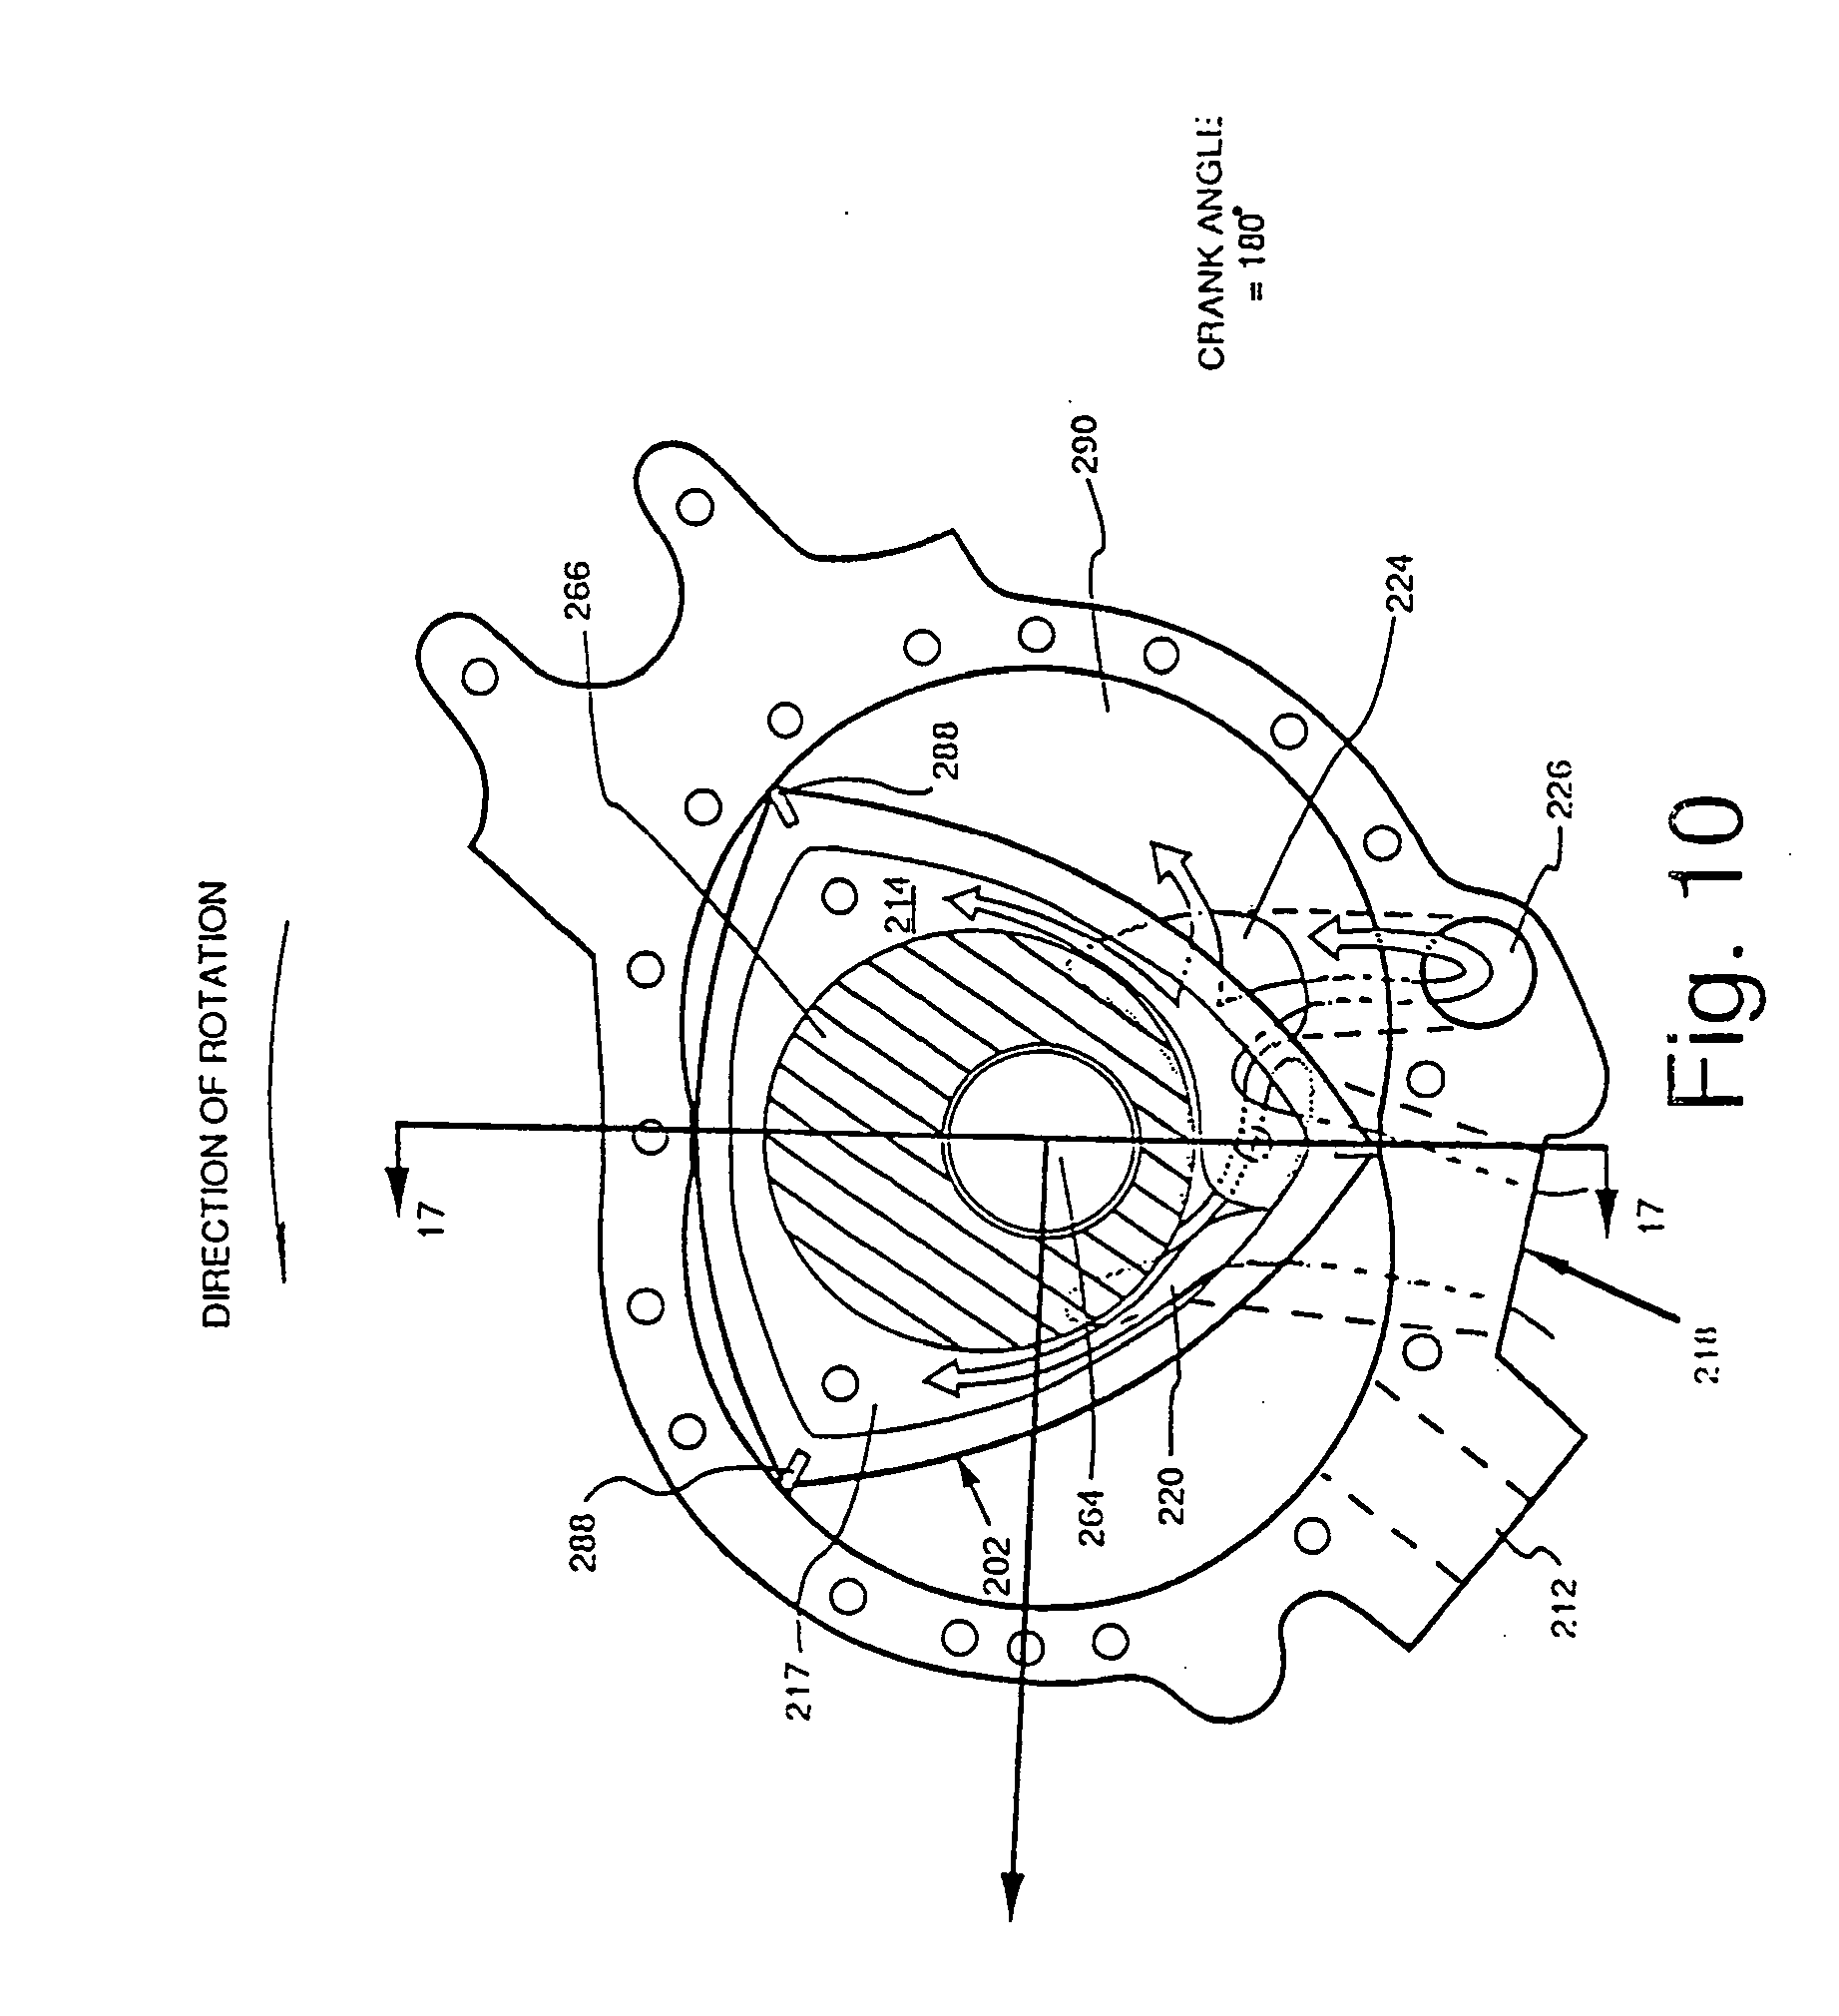 Diagrams#21091854: Rotary Engine Exploded Schematics